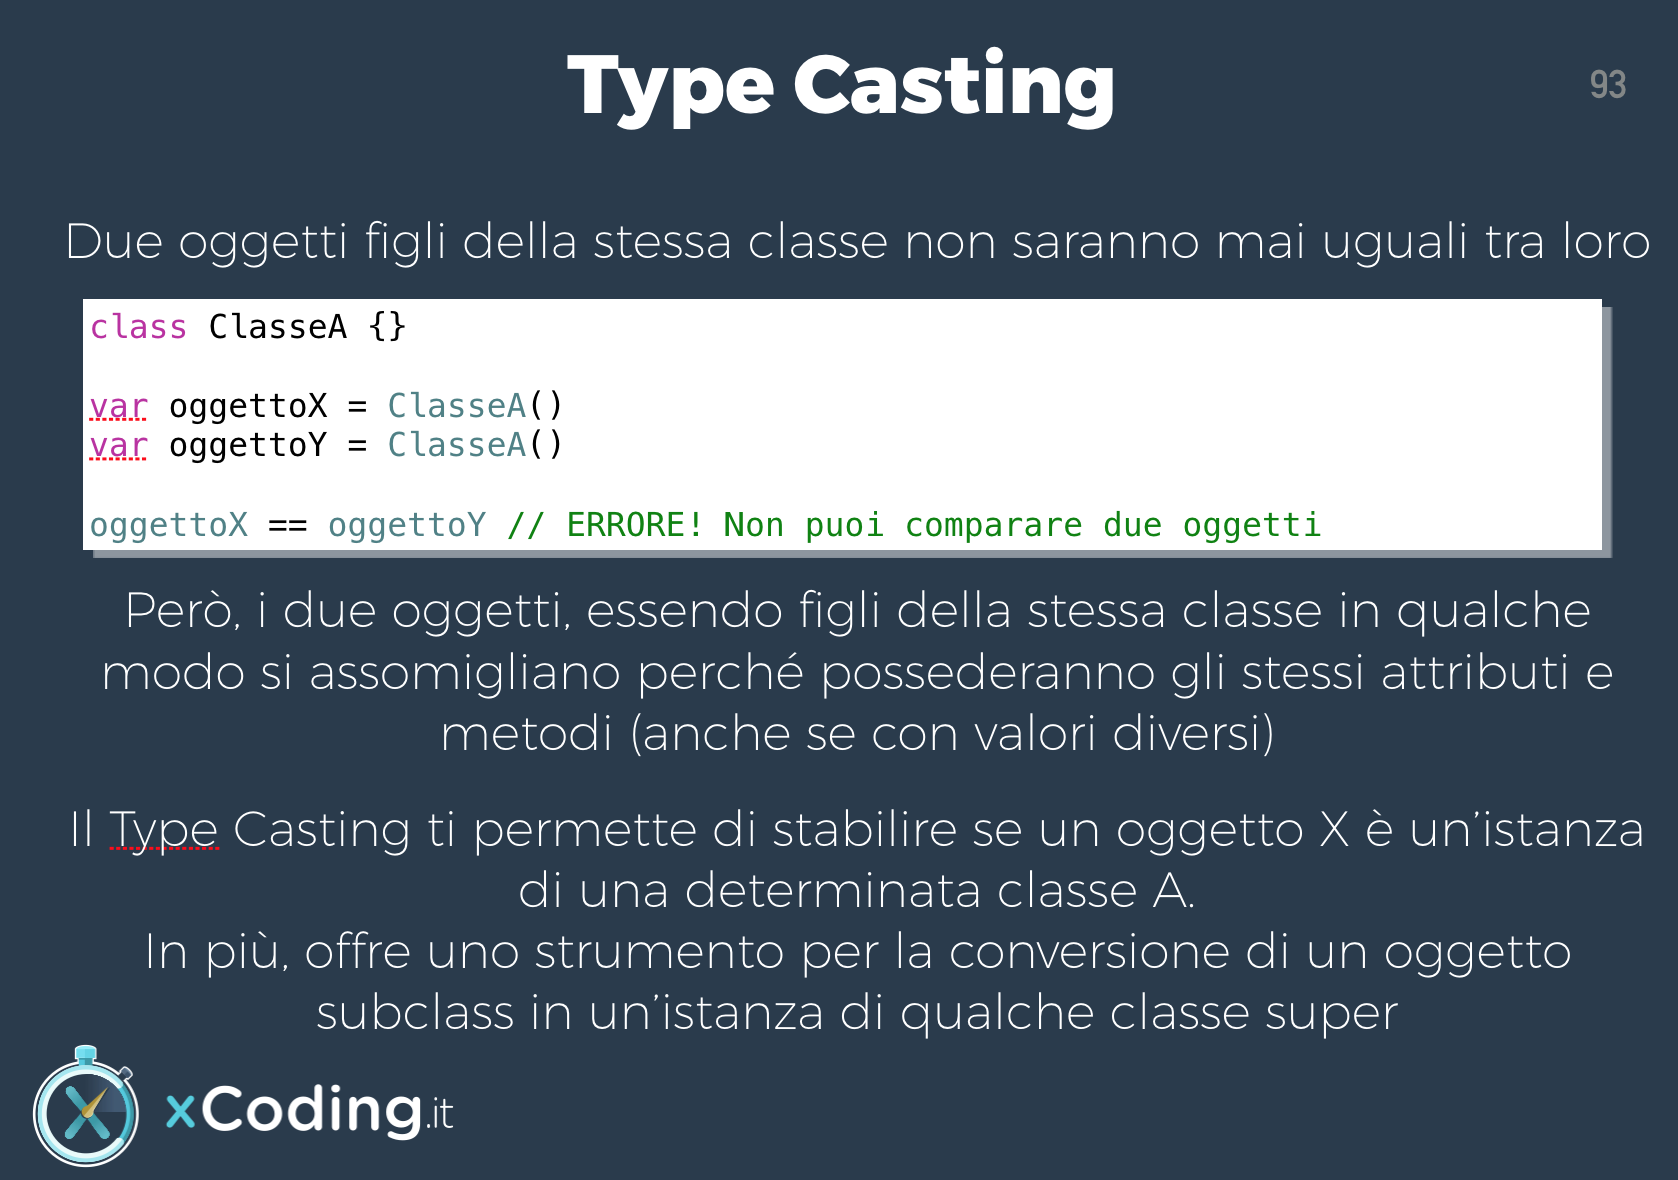 Type Casting in Swift